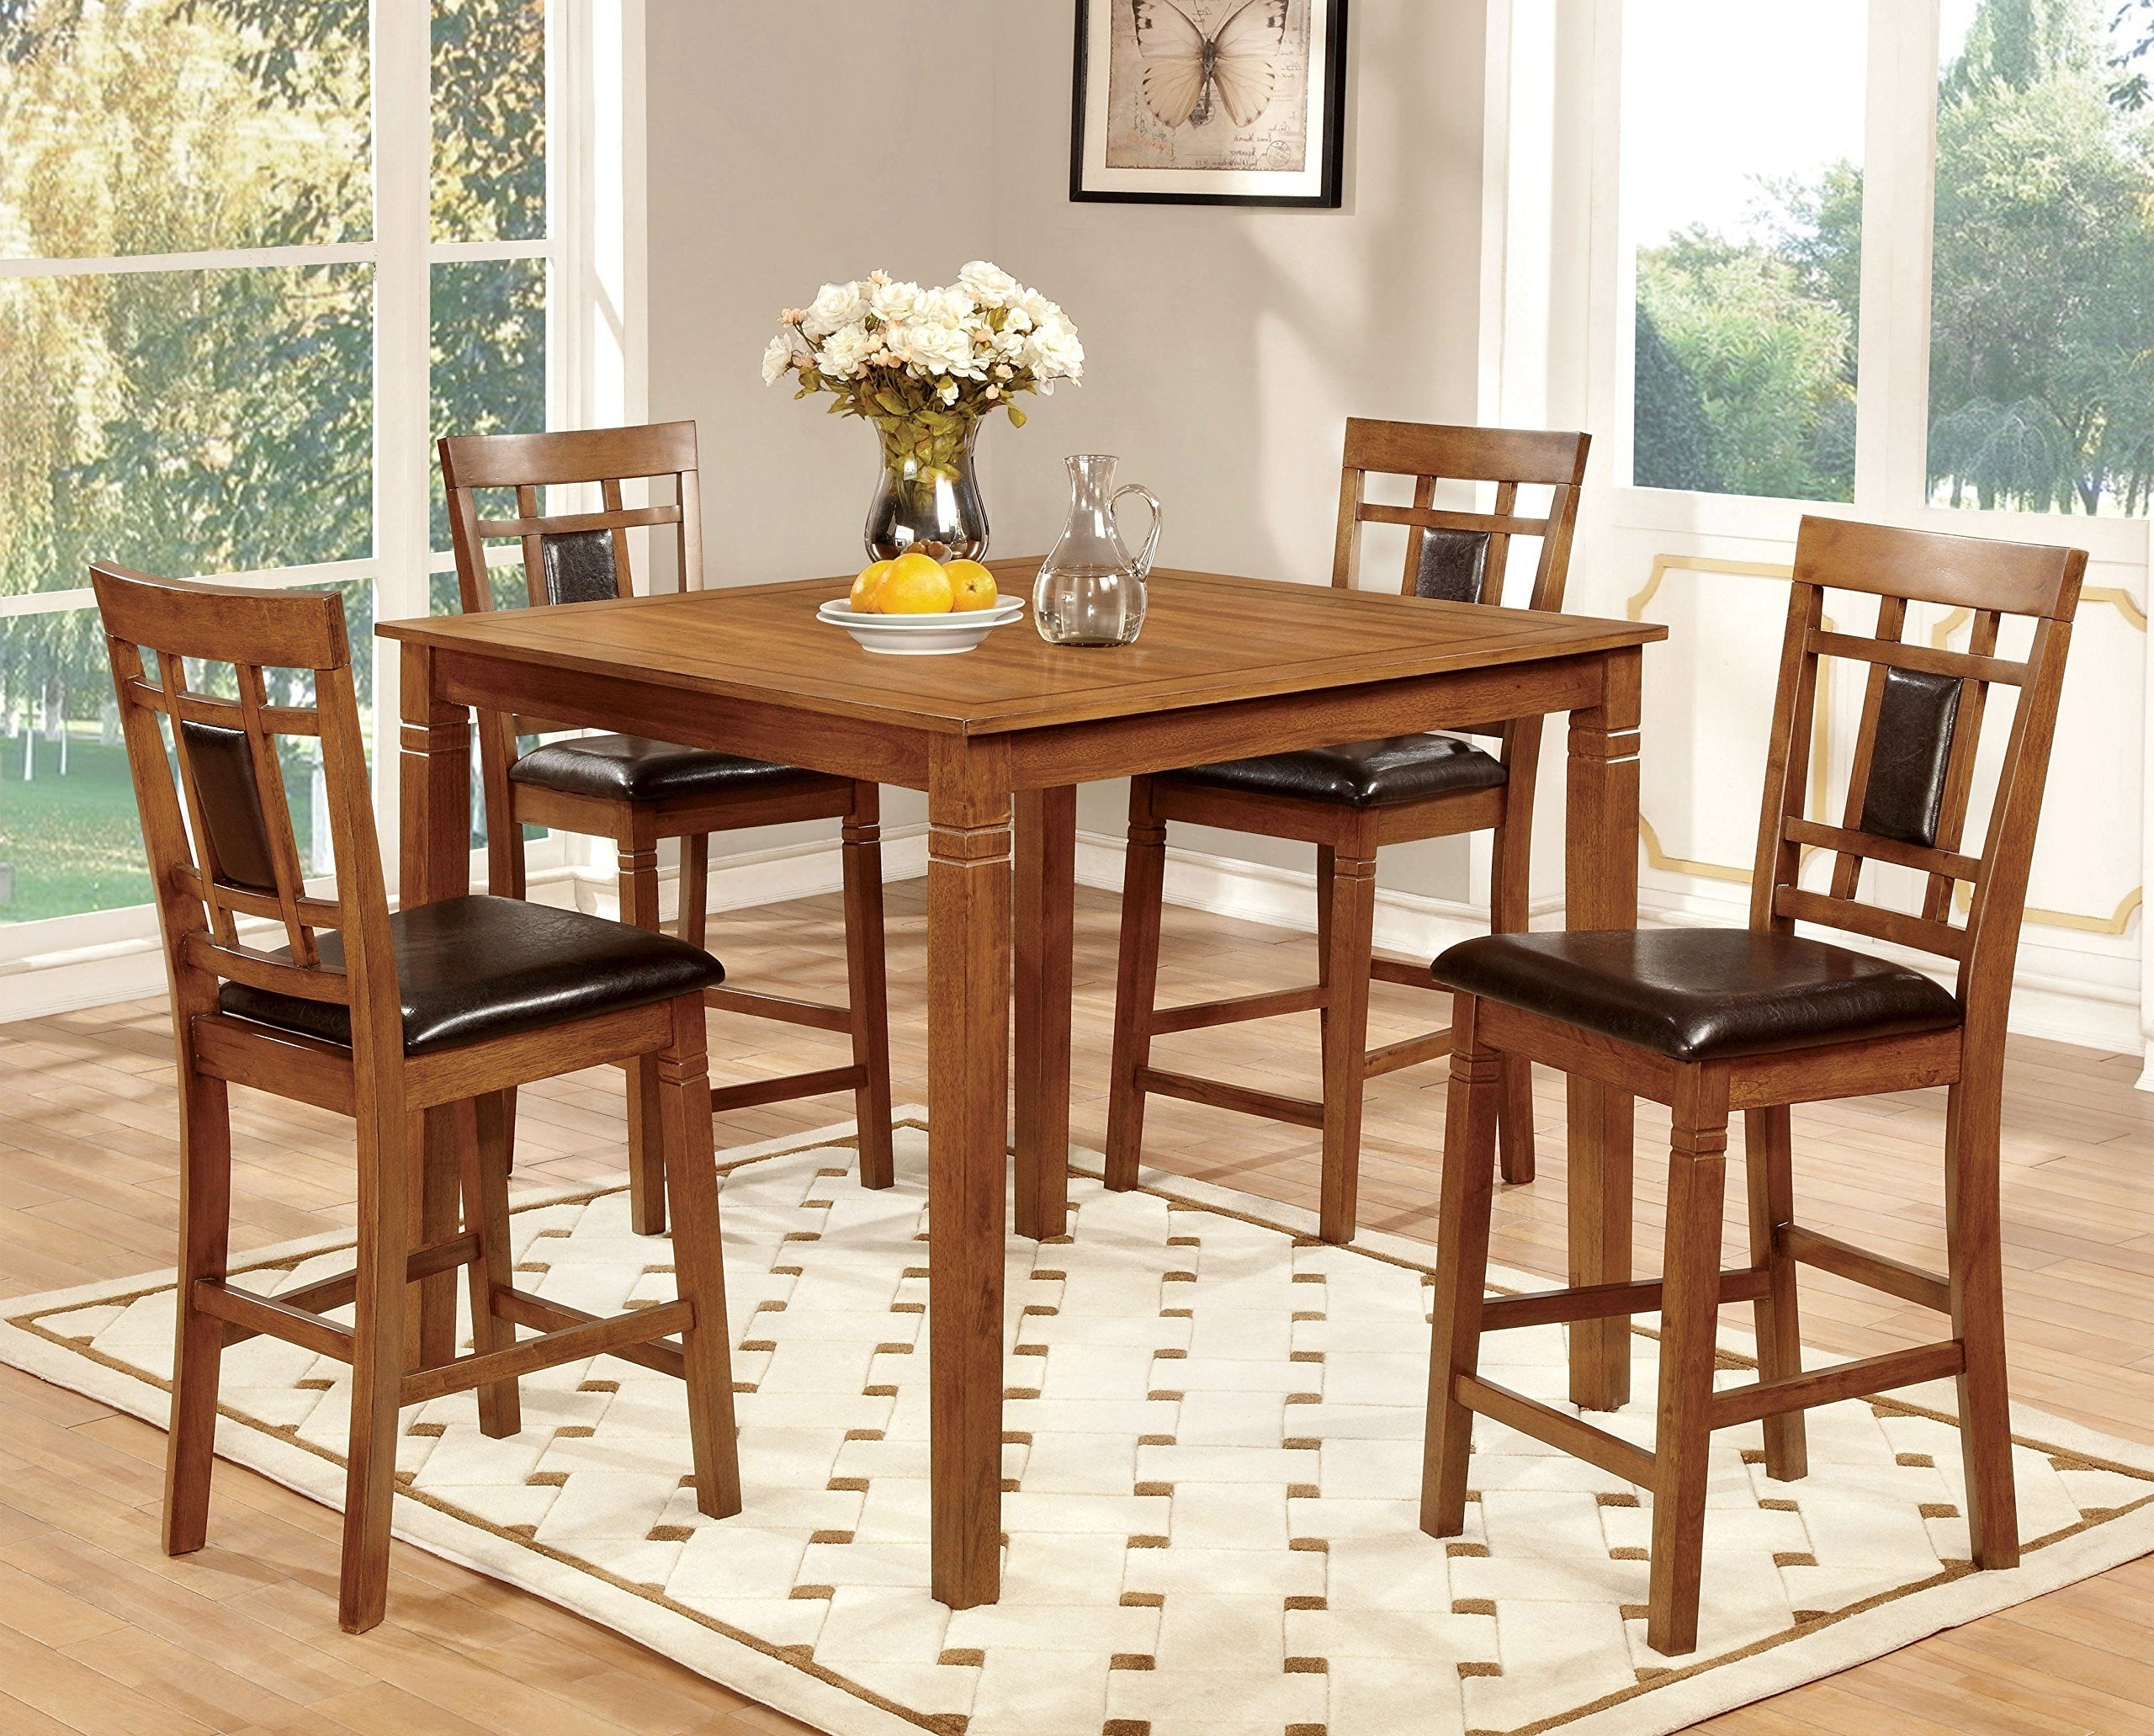 Lazio Dining Tables With Most Up To Date Furniture Of America Lazio 5 Piece Transitional Pub Dining Set (View 11 of 25)